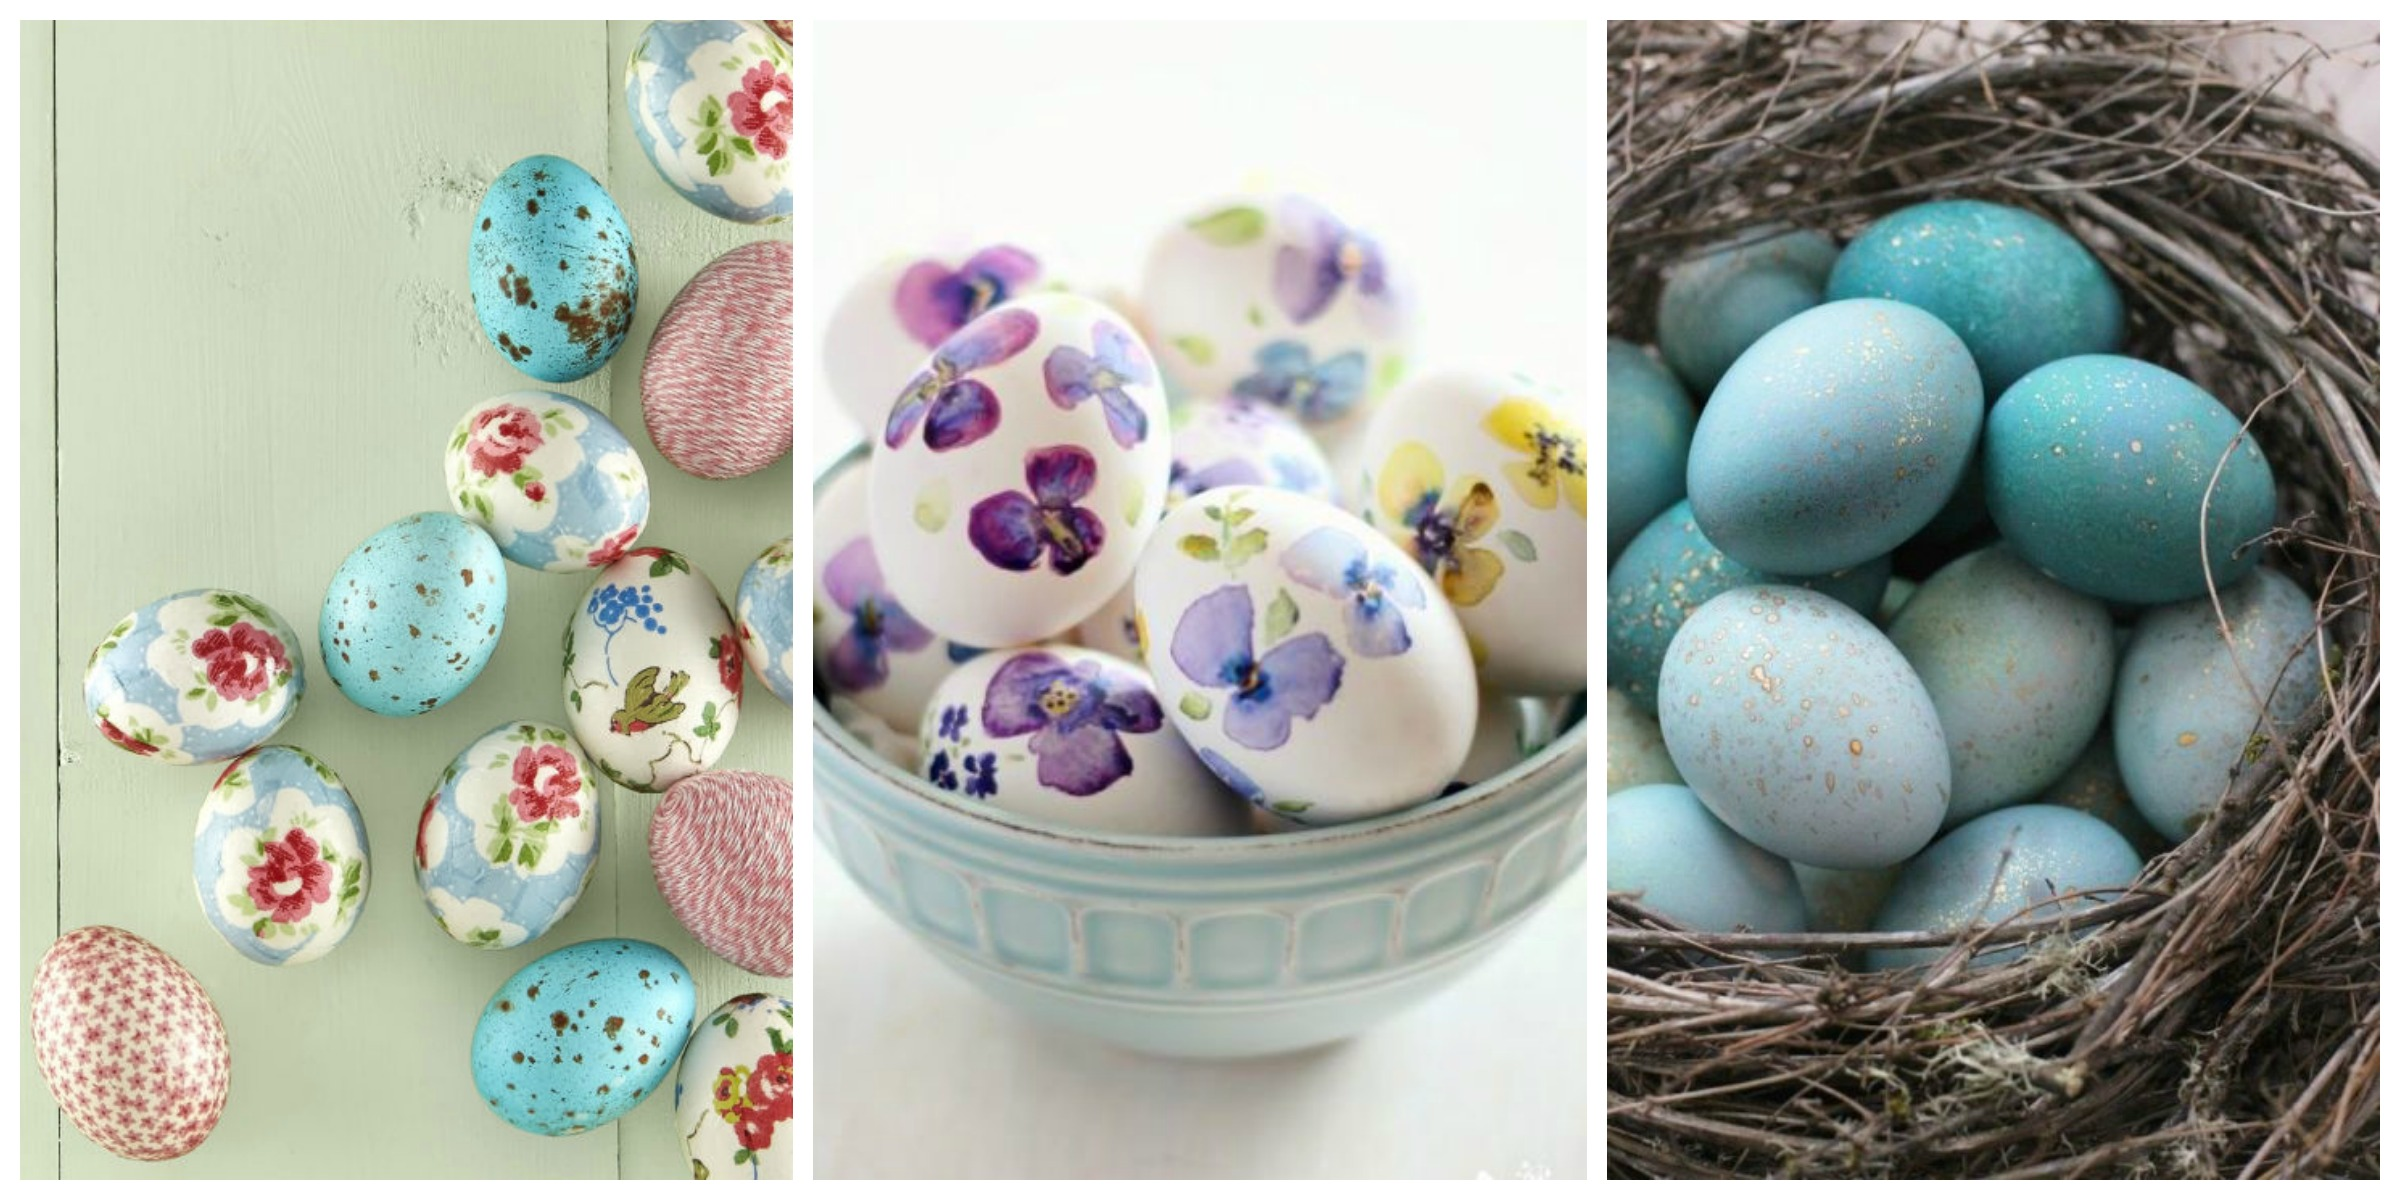 Though we'll always love the classic method of dyeing eggs, there are so many creative Easter egg decorating ideas to try. Get the whole family in on these these fun Easter crafts, including.